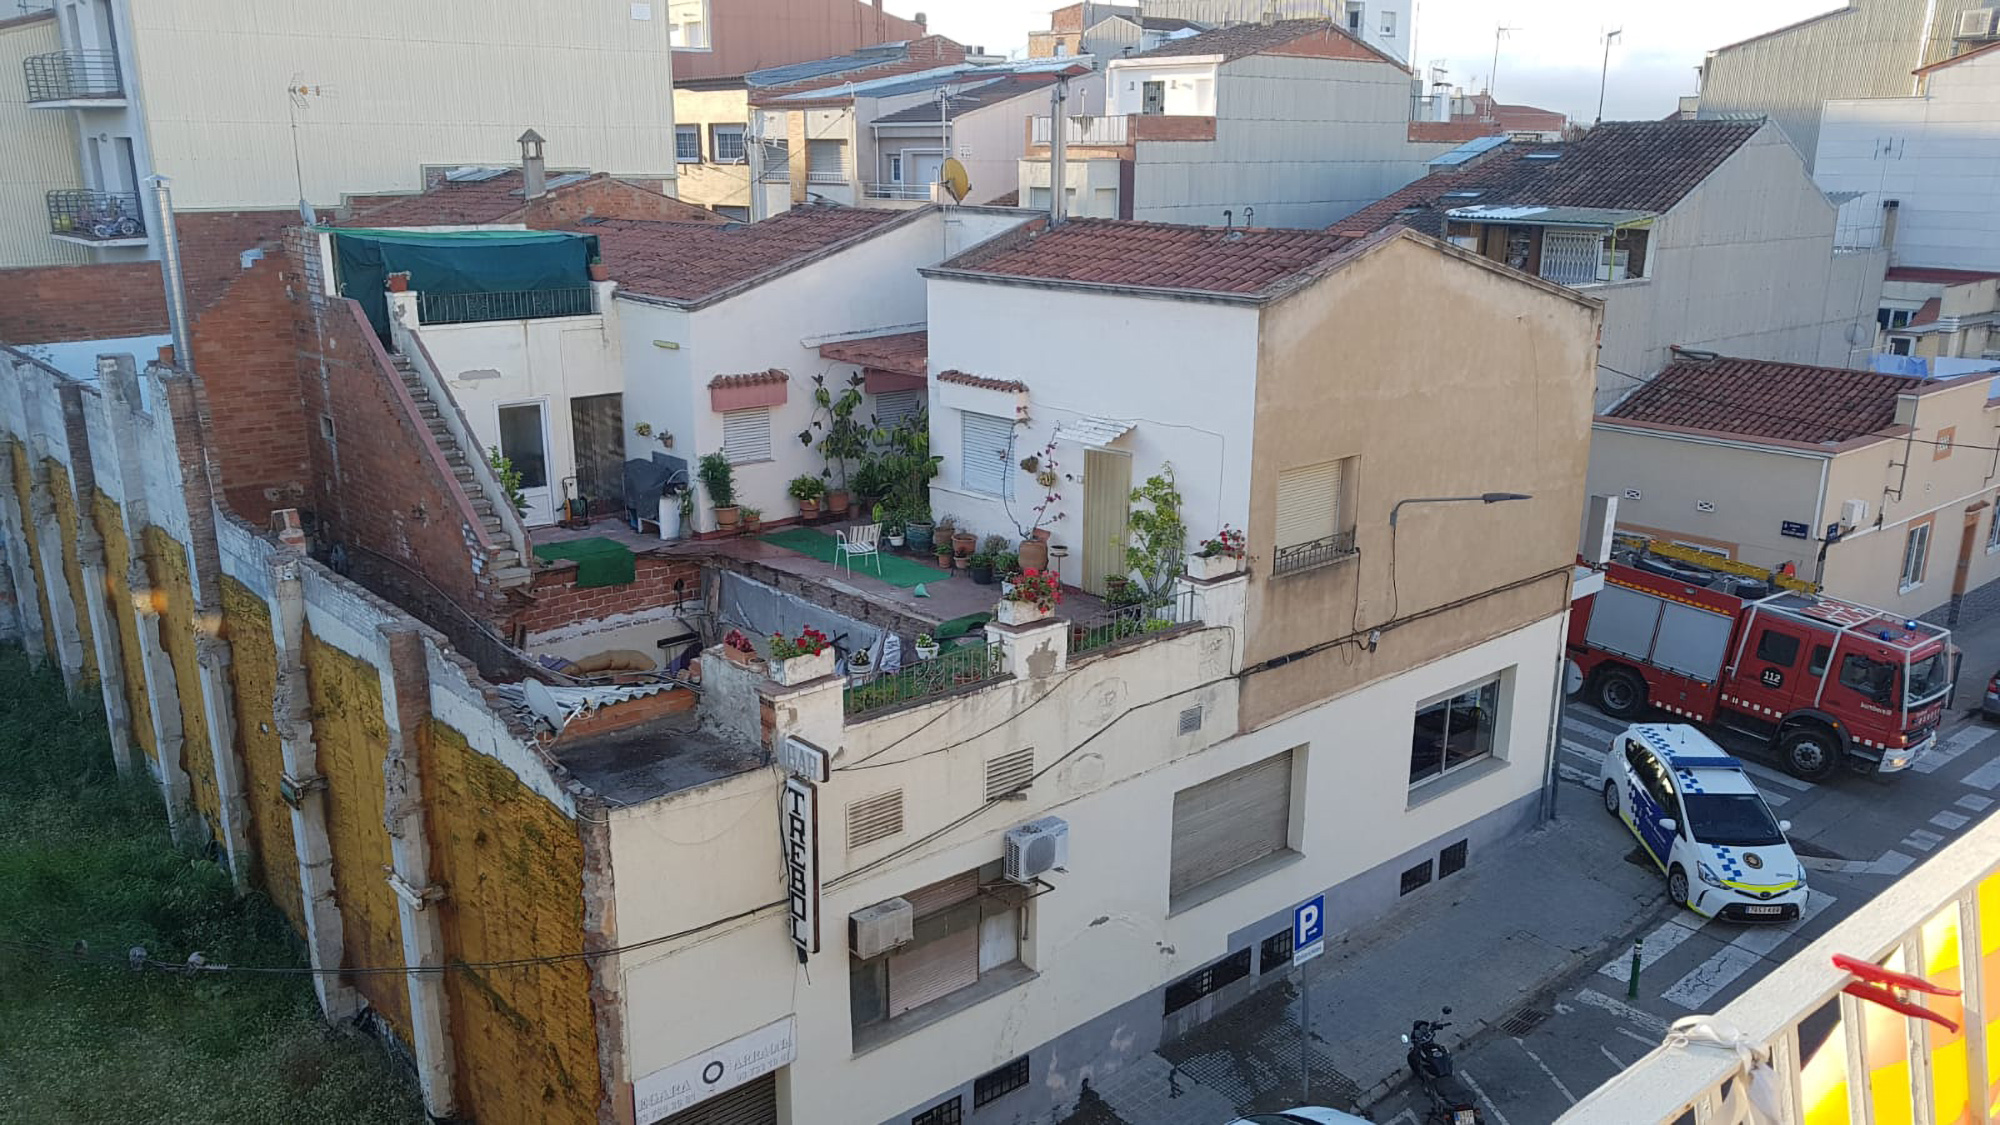 Not cool: Pools cause a rash of roof collapses in Spain